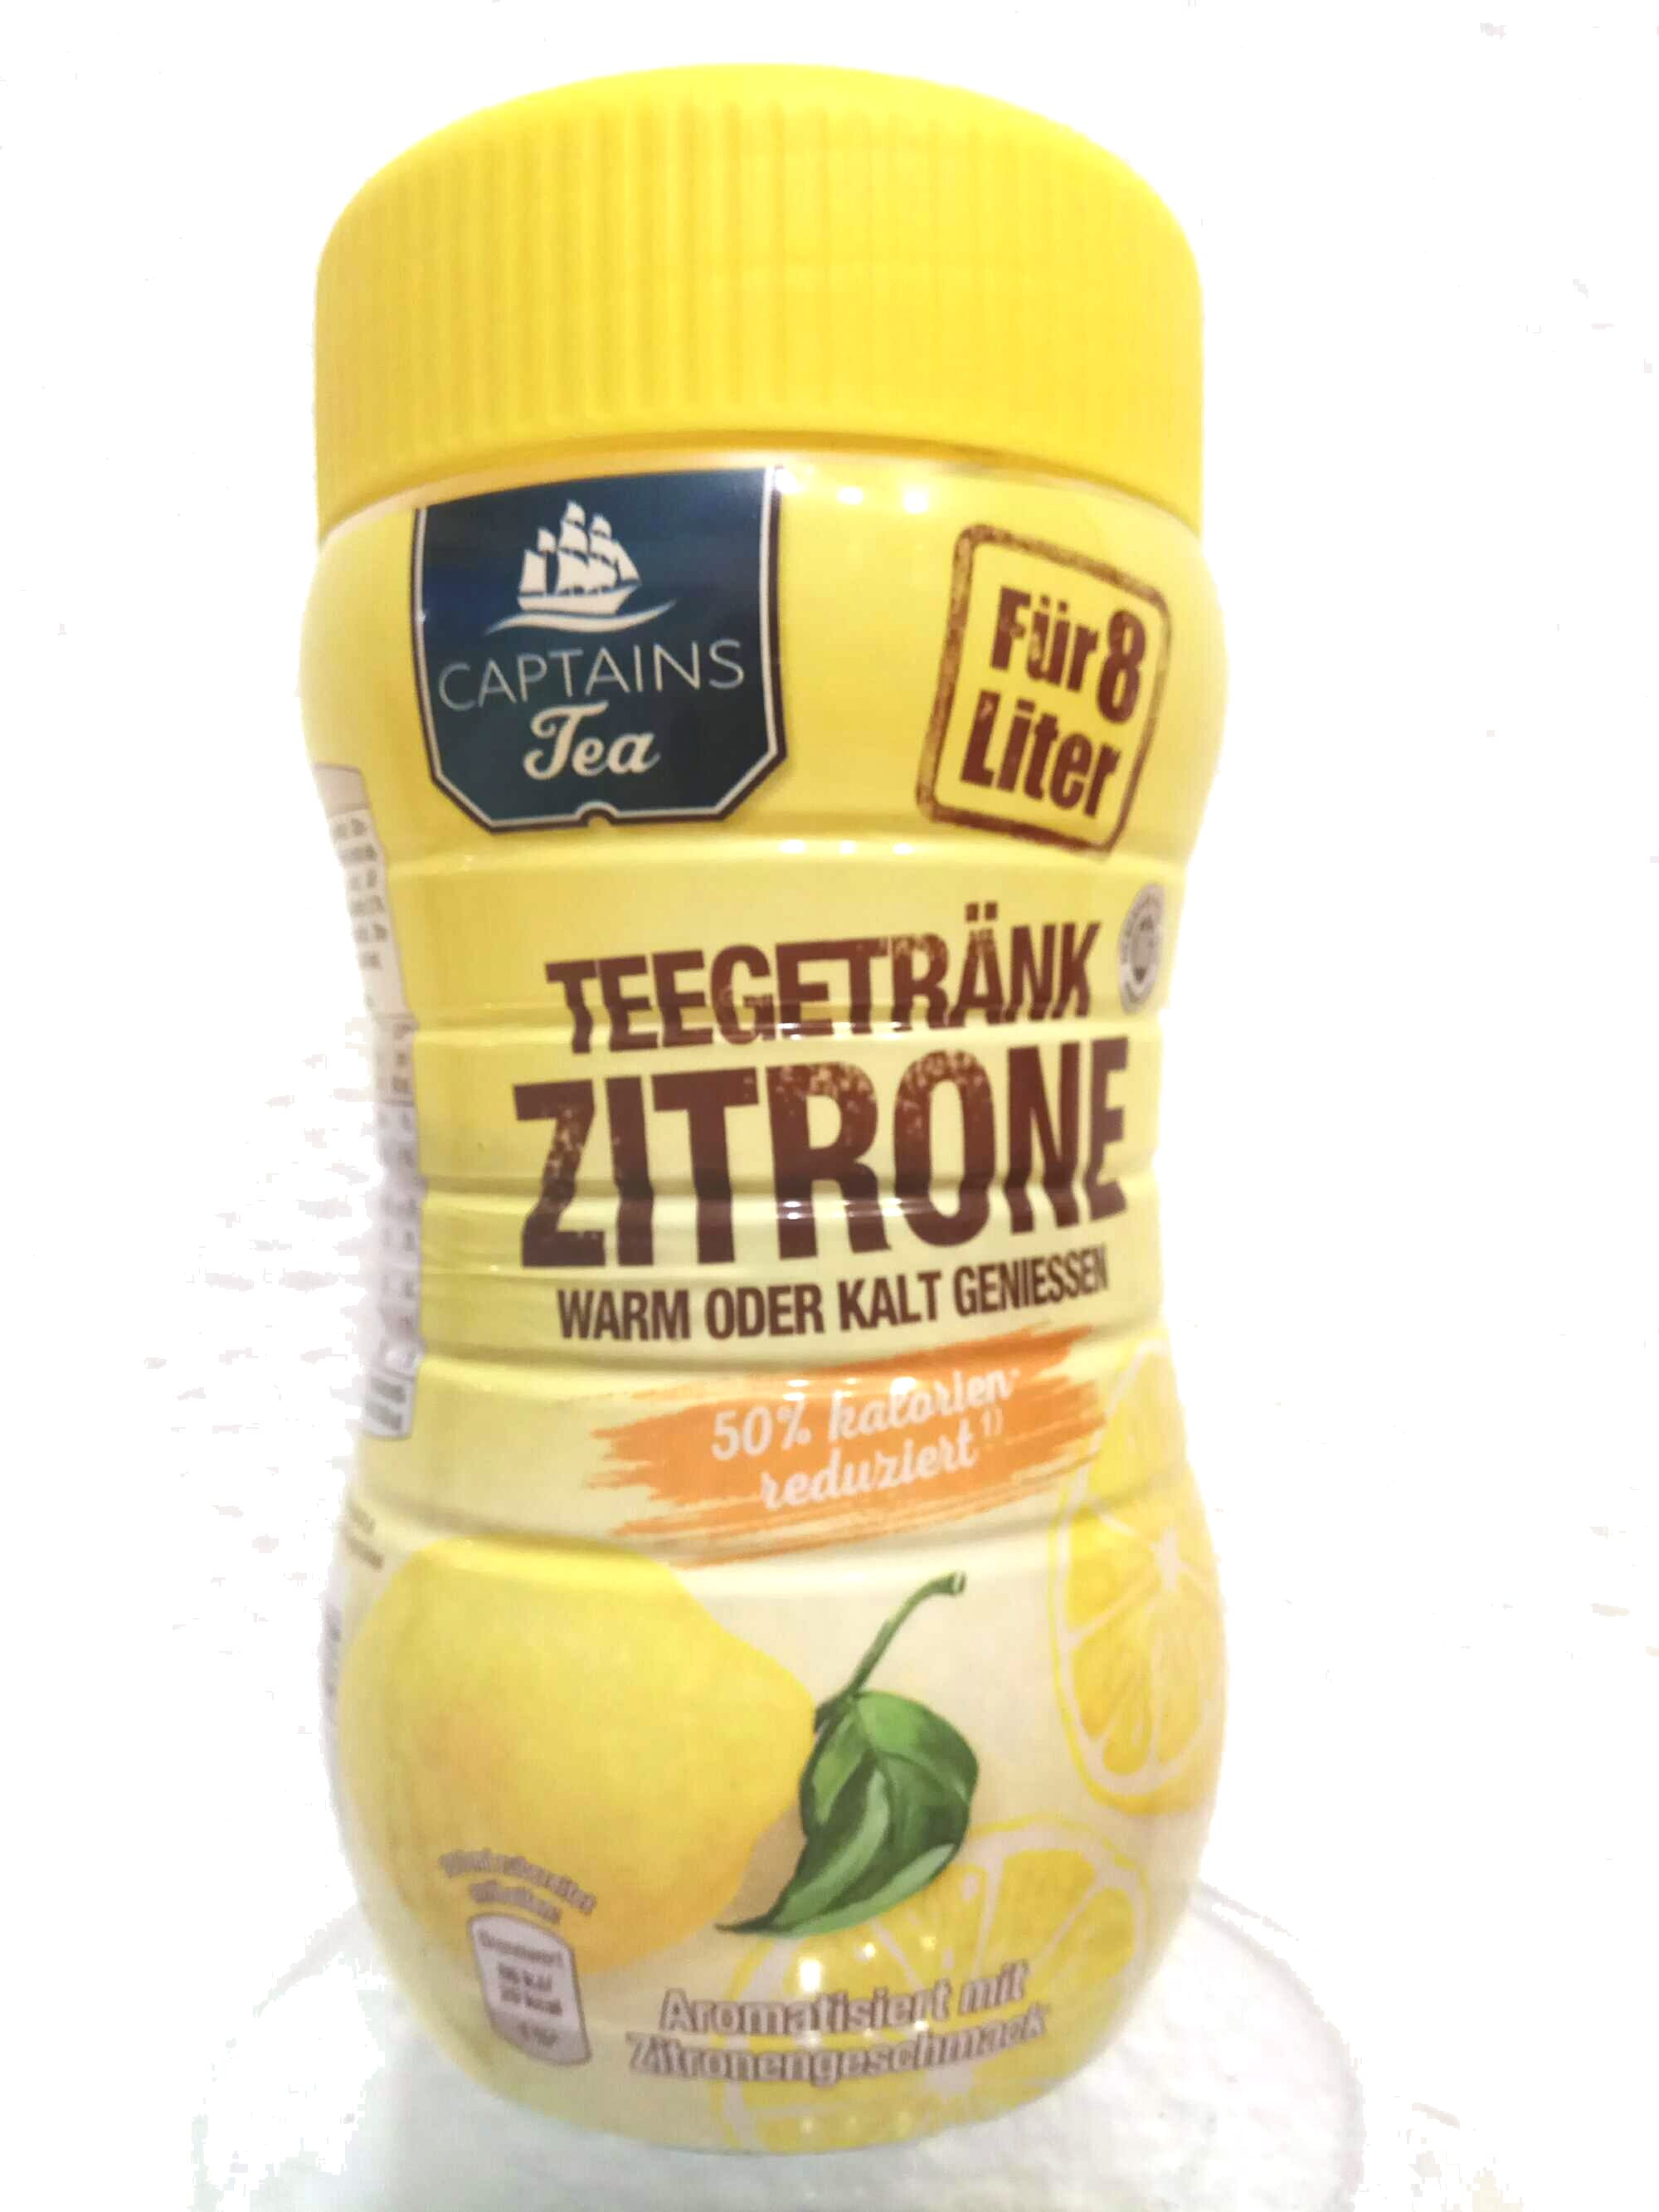 Teegetränk Zitrone - Product